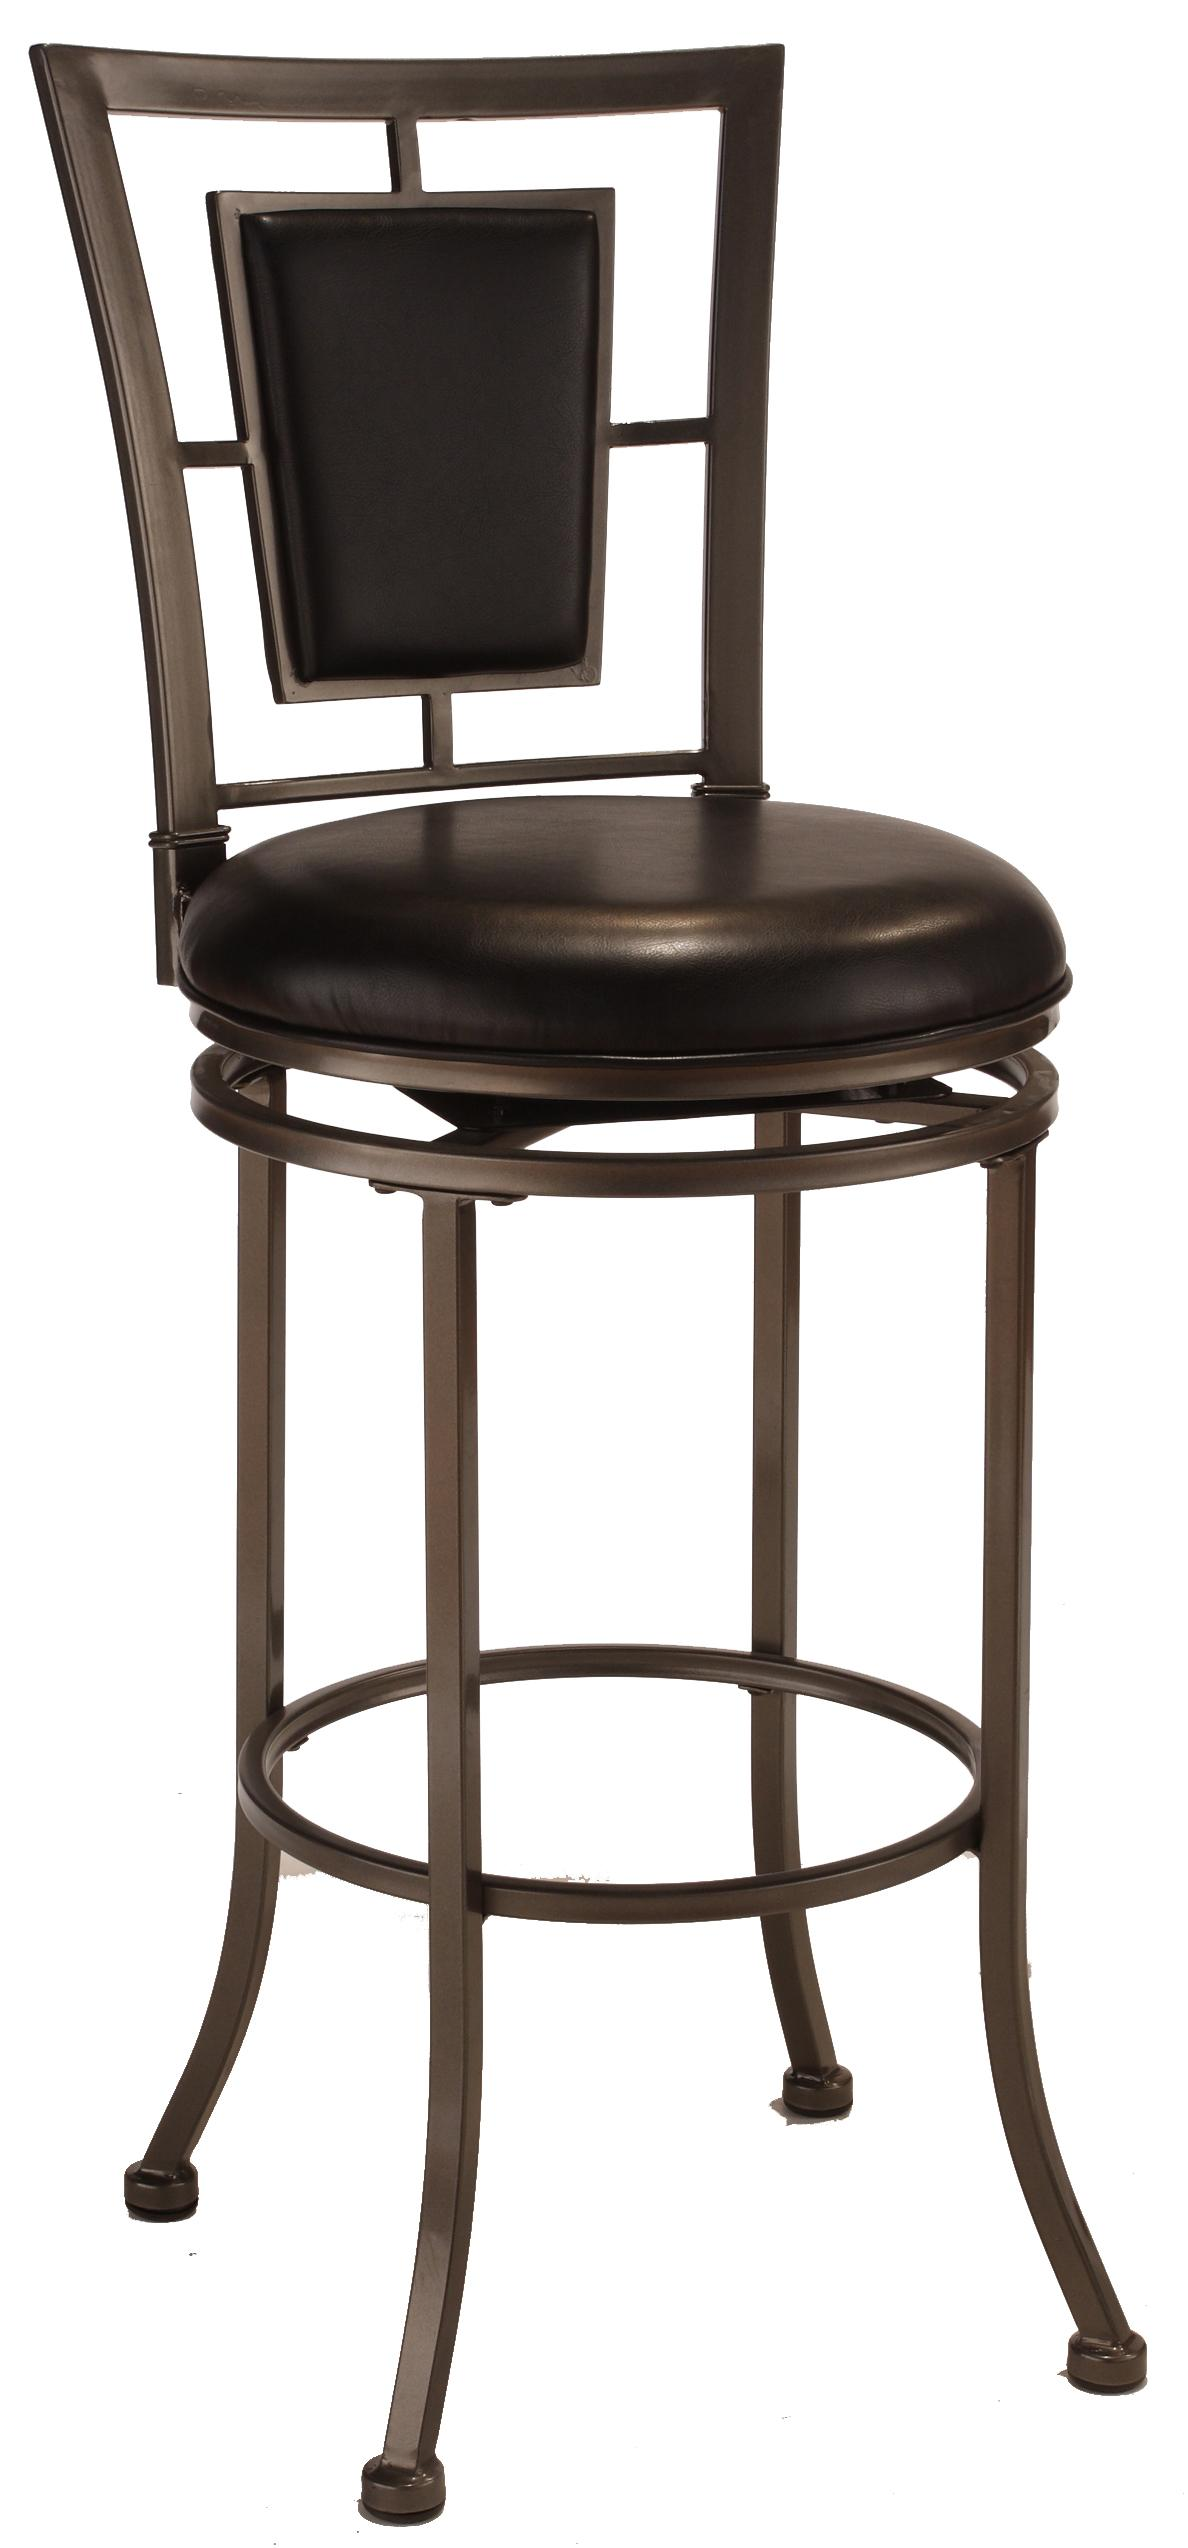 Stools Counter Height Swivel Stool at Ruby Gordon Home